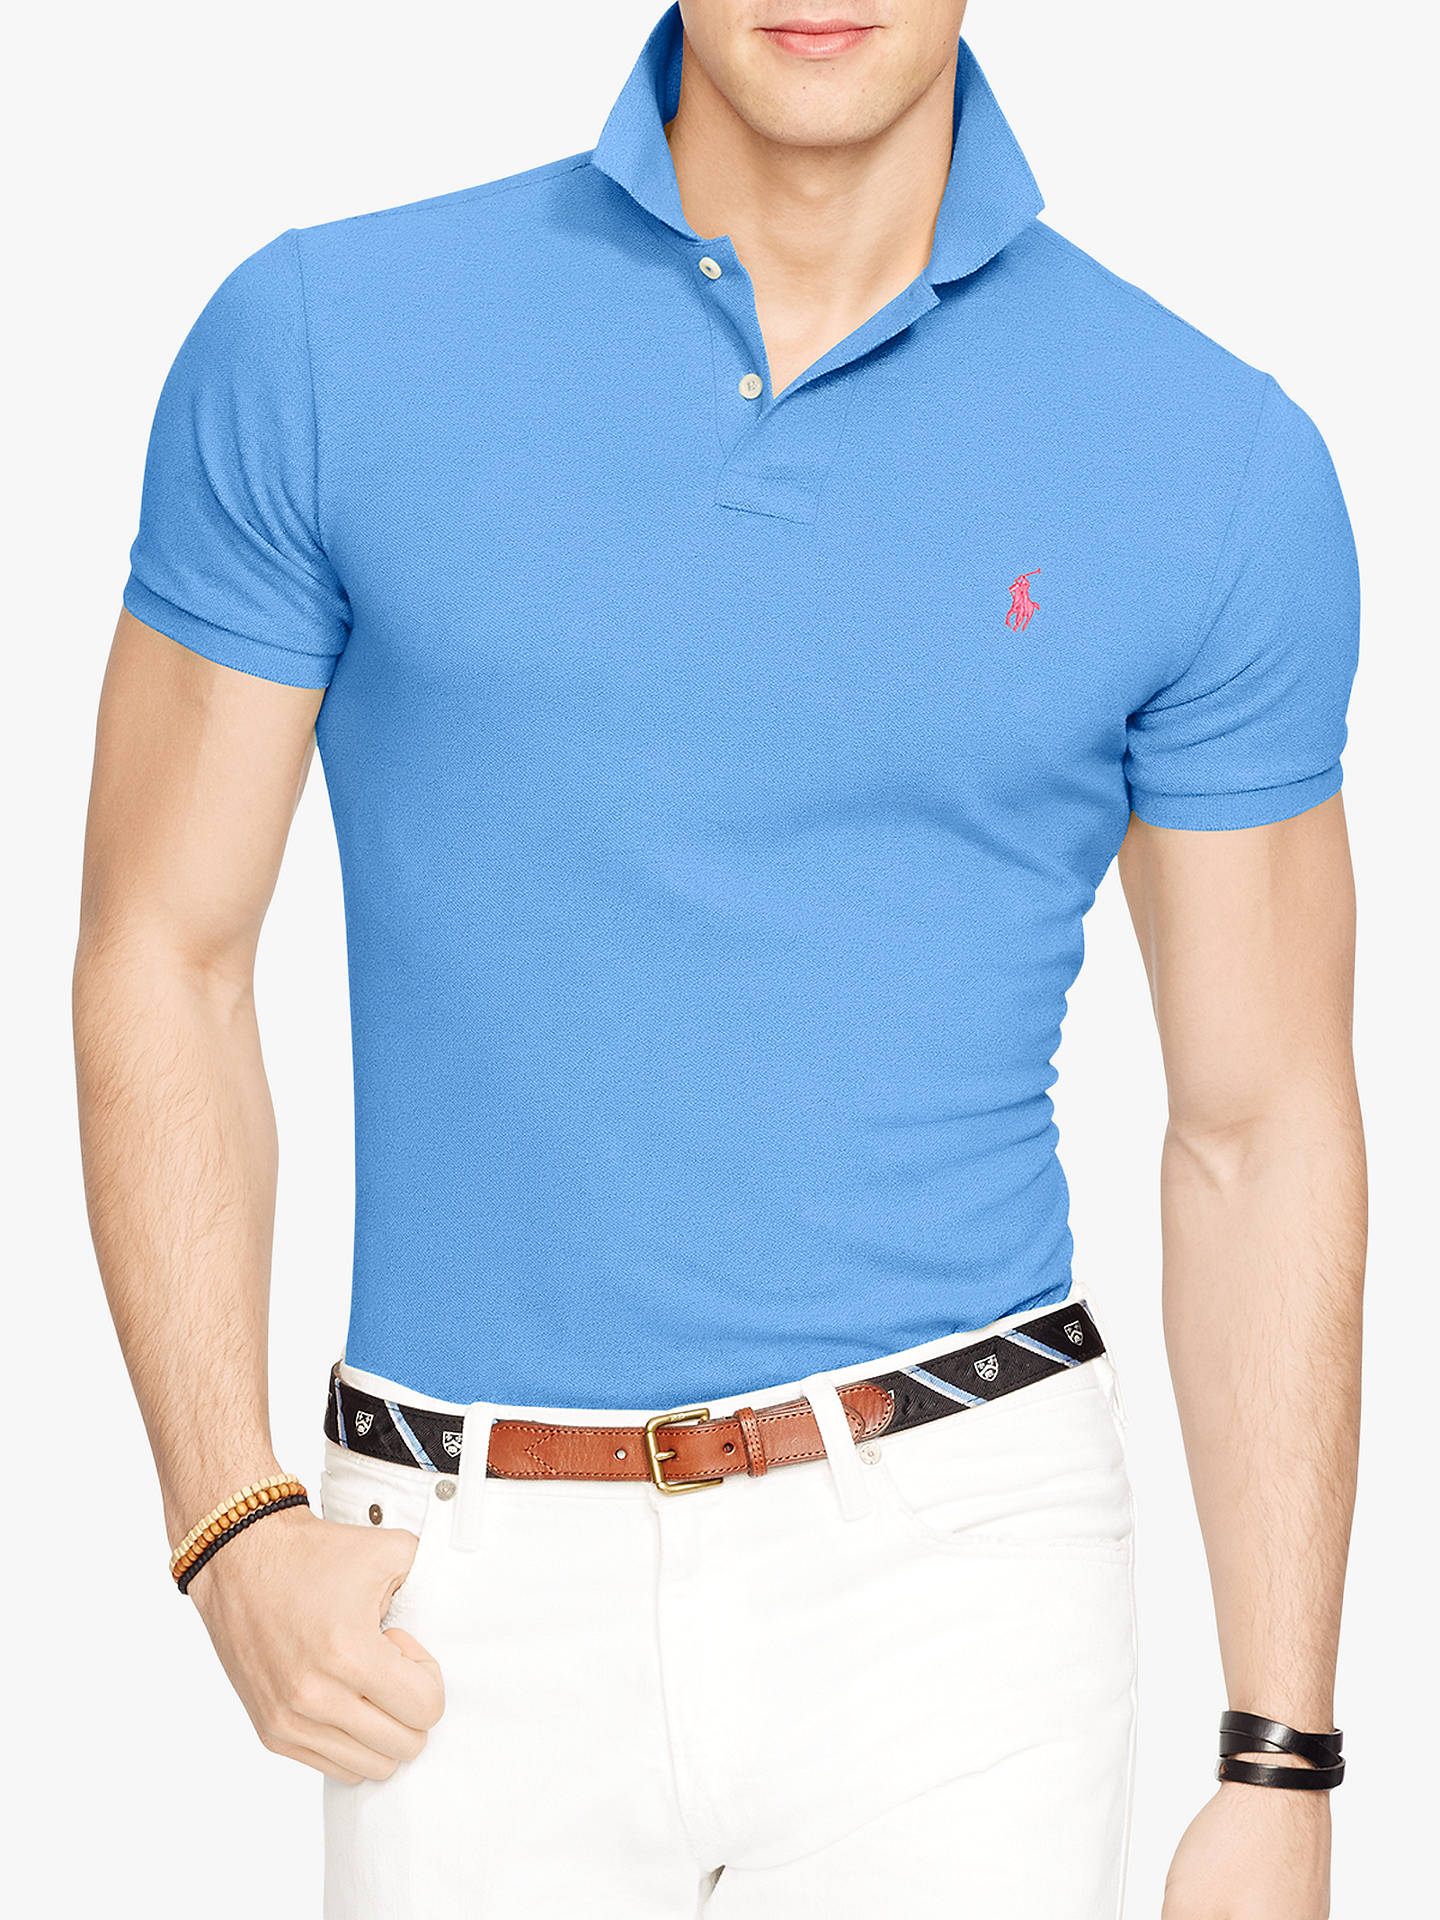 1993b7c03 Buy Polo Ralph Lauren Slim Fit Mesh Polo Shirt, Harbor Island Blue, M  Online ...